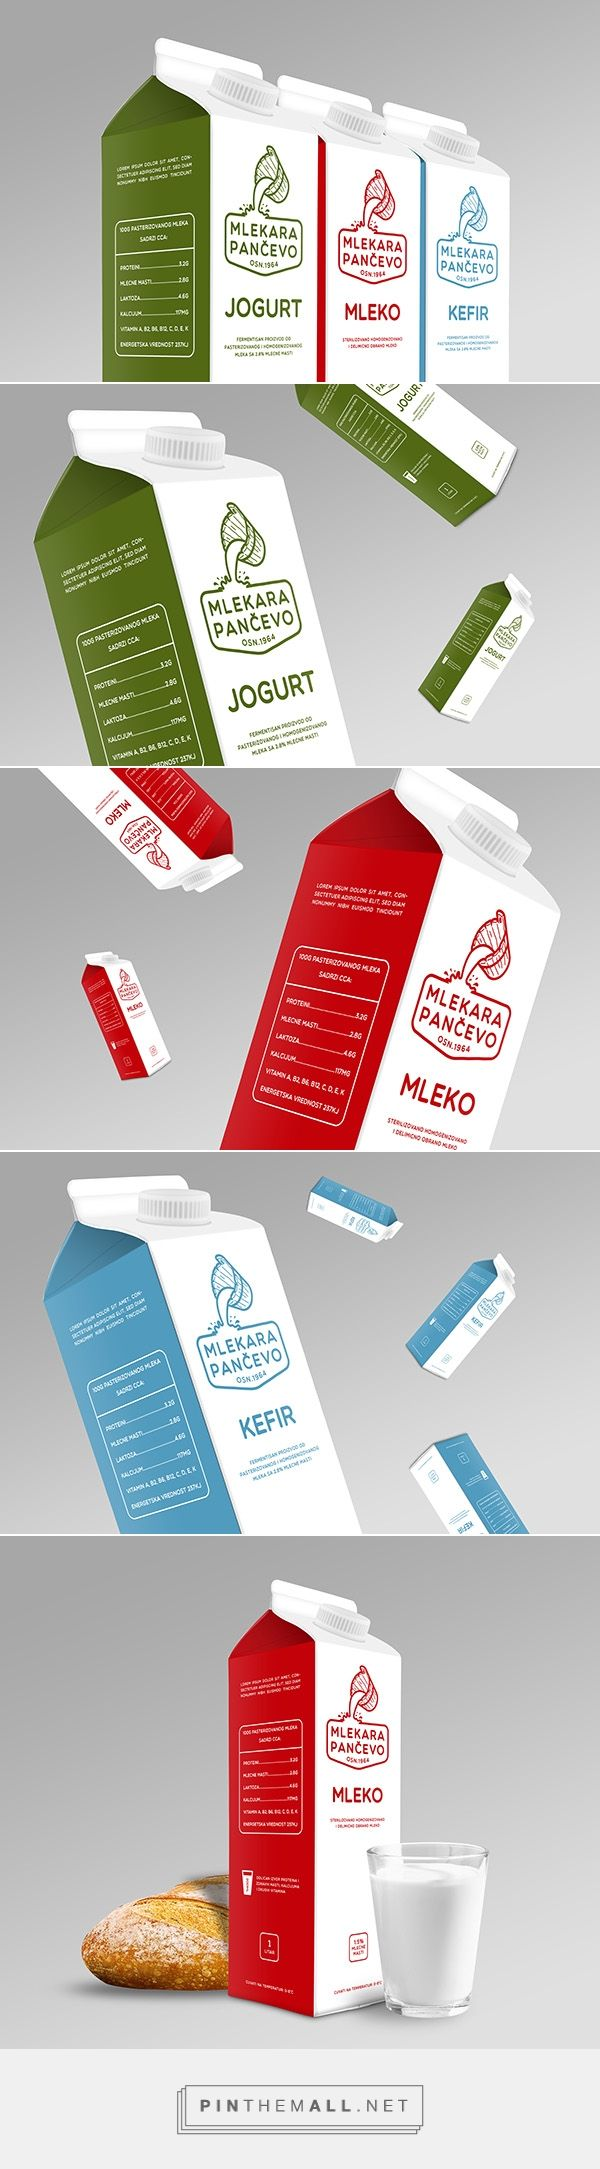 Milk - packaging